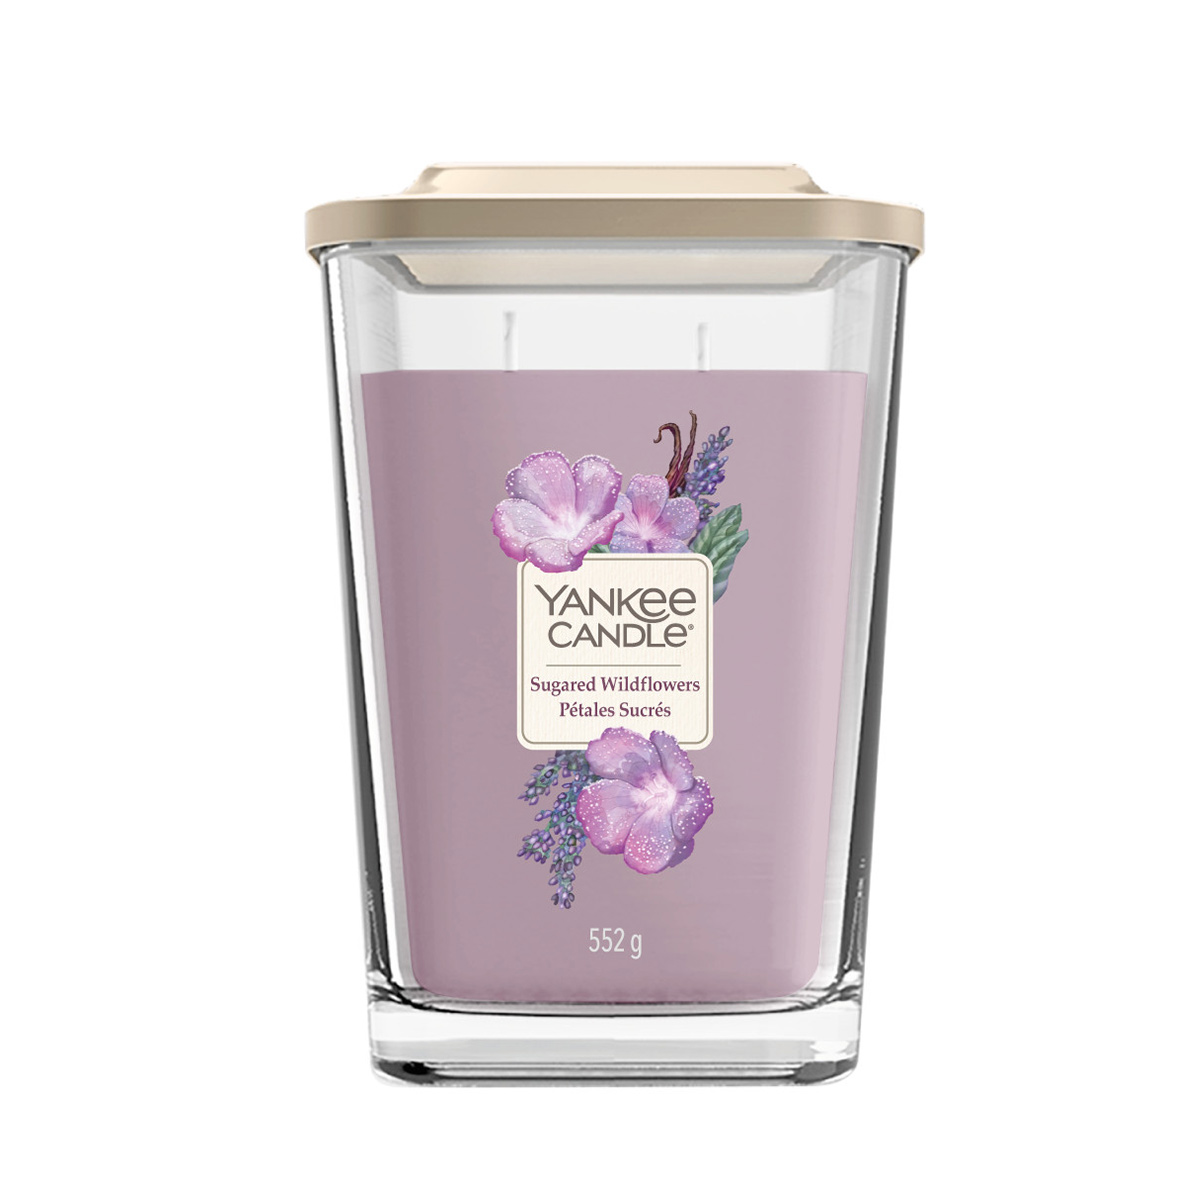 Elevation-Sugared-Wildflowers-Large-Square-Candle-1611833E